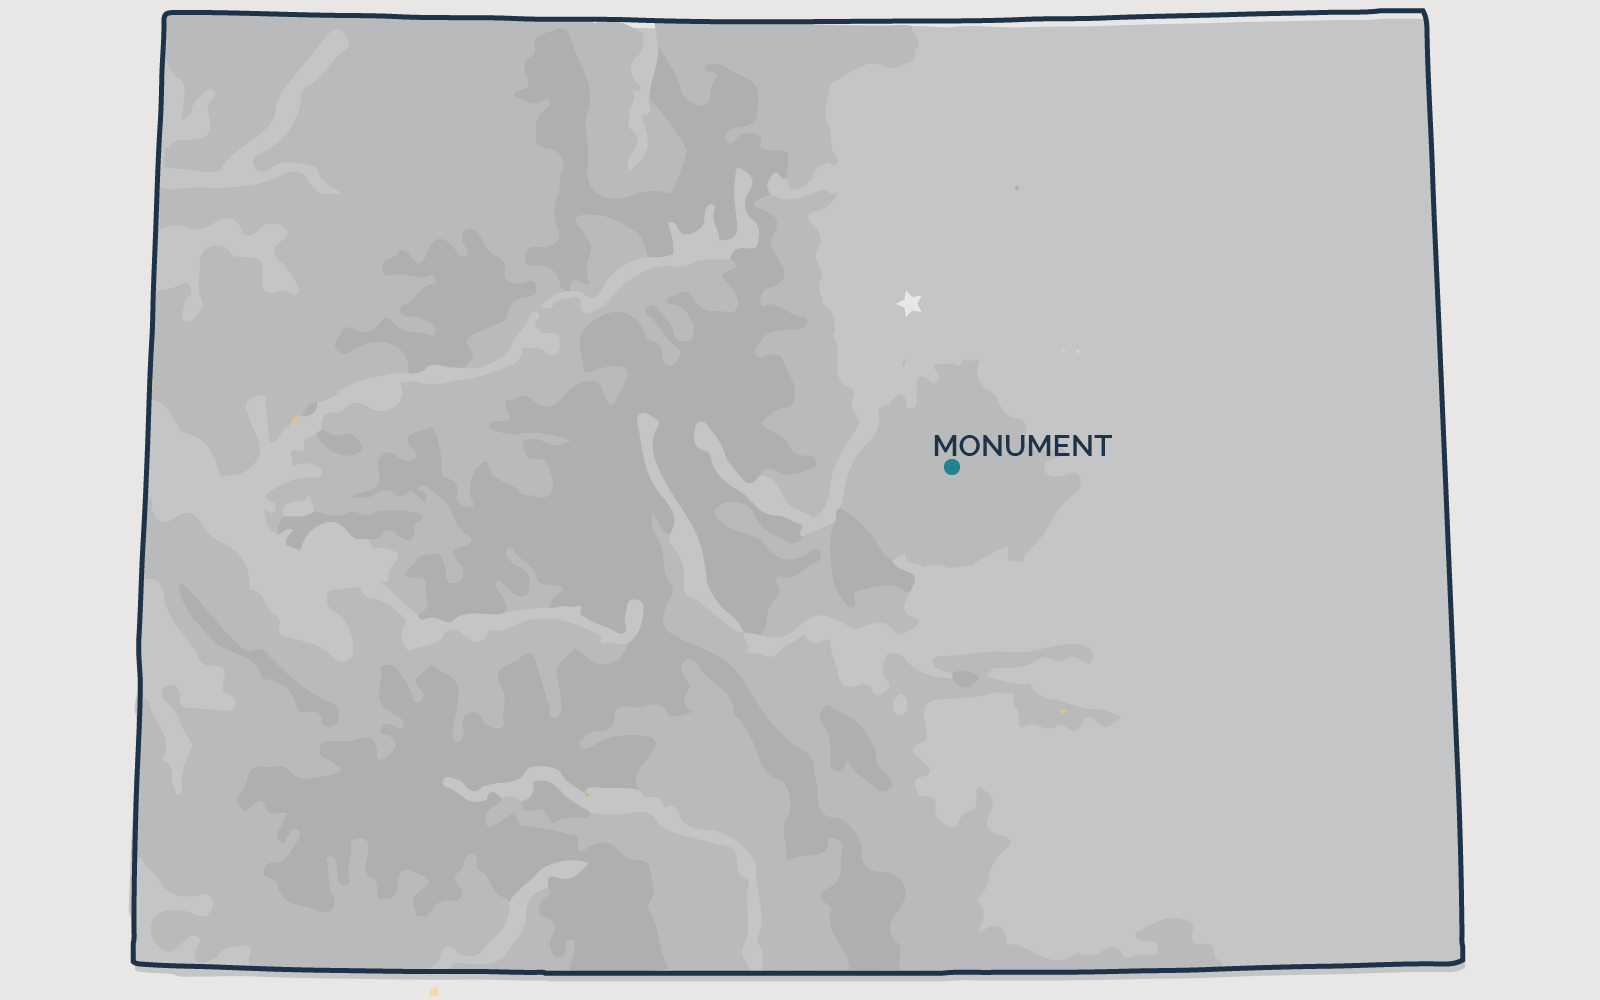 MONUMENT, Colorado - Your health and satisfaction are important to us. We are located in Littleton, Colorado and are pleased to provide our professional, honest, and affordable radon testing and mitigation services to happy and satisfied customers all along the front range of our beautiful State of Colorado.